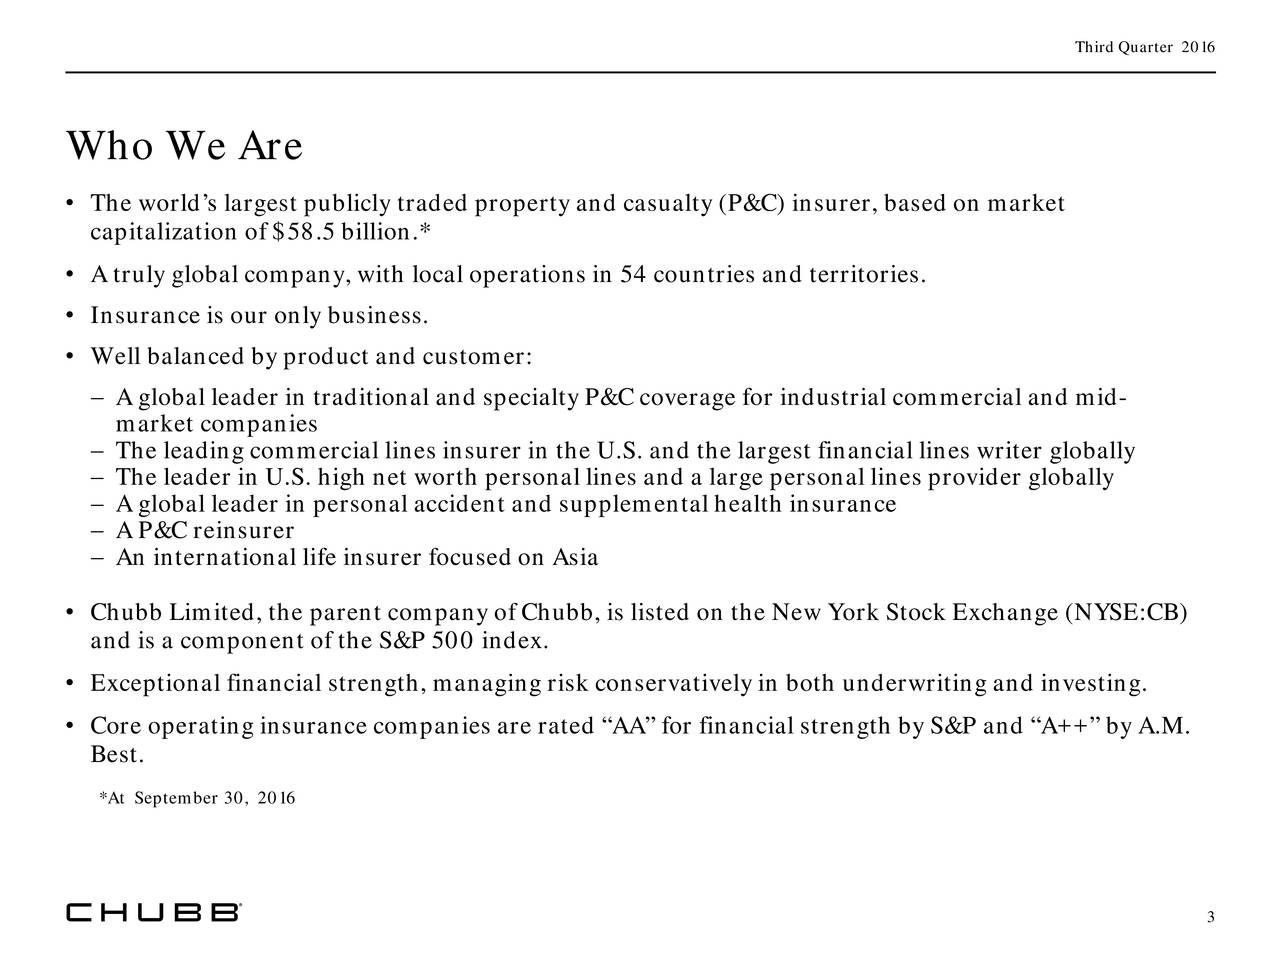 Who We Are The worlds largest publicly traded property and casualty (P&C) insurer, based on market capitalization of $58.5 billion.* A truly global company, with local operations in 54 countries and territories. Insurance is our only business. Well balanced by product and customer: A global leader in traditional and specialtyP&C coverage for industrial commercial and mid- market companies The leading commercial lines insurer in the U.S. and the largest financial lines writer globally The leader in U.S. high net worth personal lines and a large personallines provider globally A global leader inpersonal accident and supplemental health insurance A P&C reinsurer An international life insurer focused on Asia Chubb Limited, the parent company of Chubb, is listed on the New York Stock Exchange (NYSE:CB) and is a component of the S&P 500 index. Exceptional financial strength, managing risk conservatively in both underwriting and investing. Core operating insurance companies are rated AA for financial strength by S&P and A++ by A.M. Best. *At September 30, 2016 3